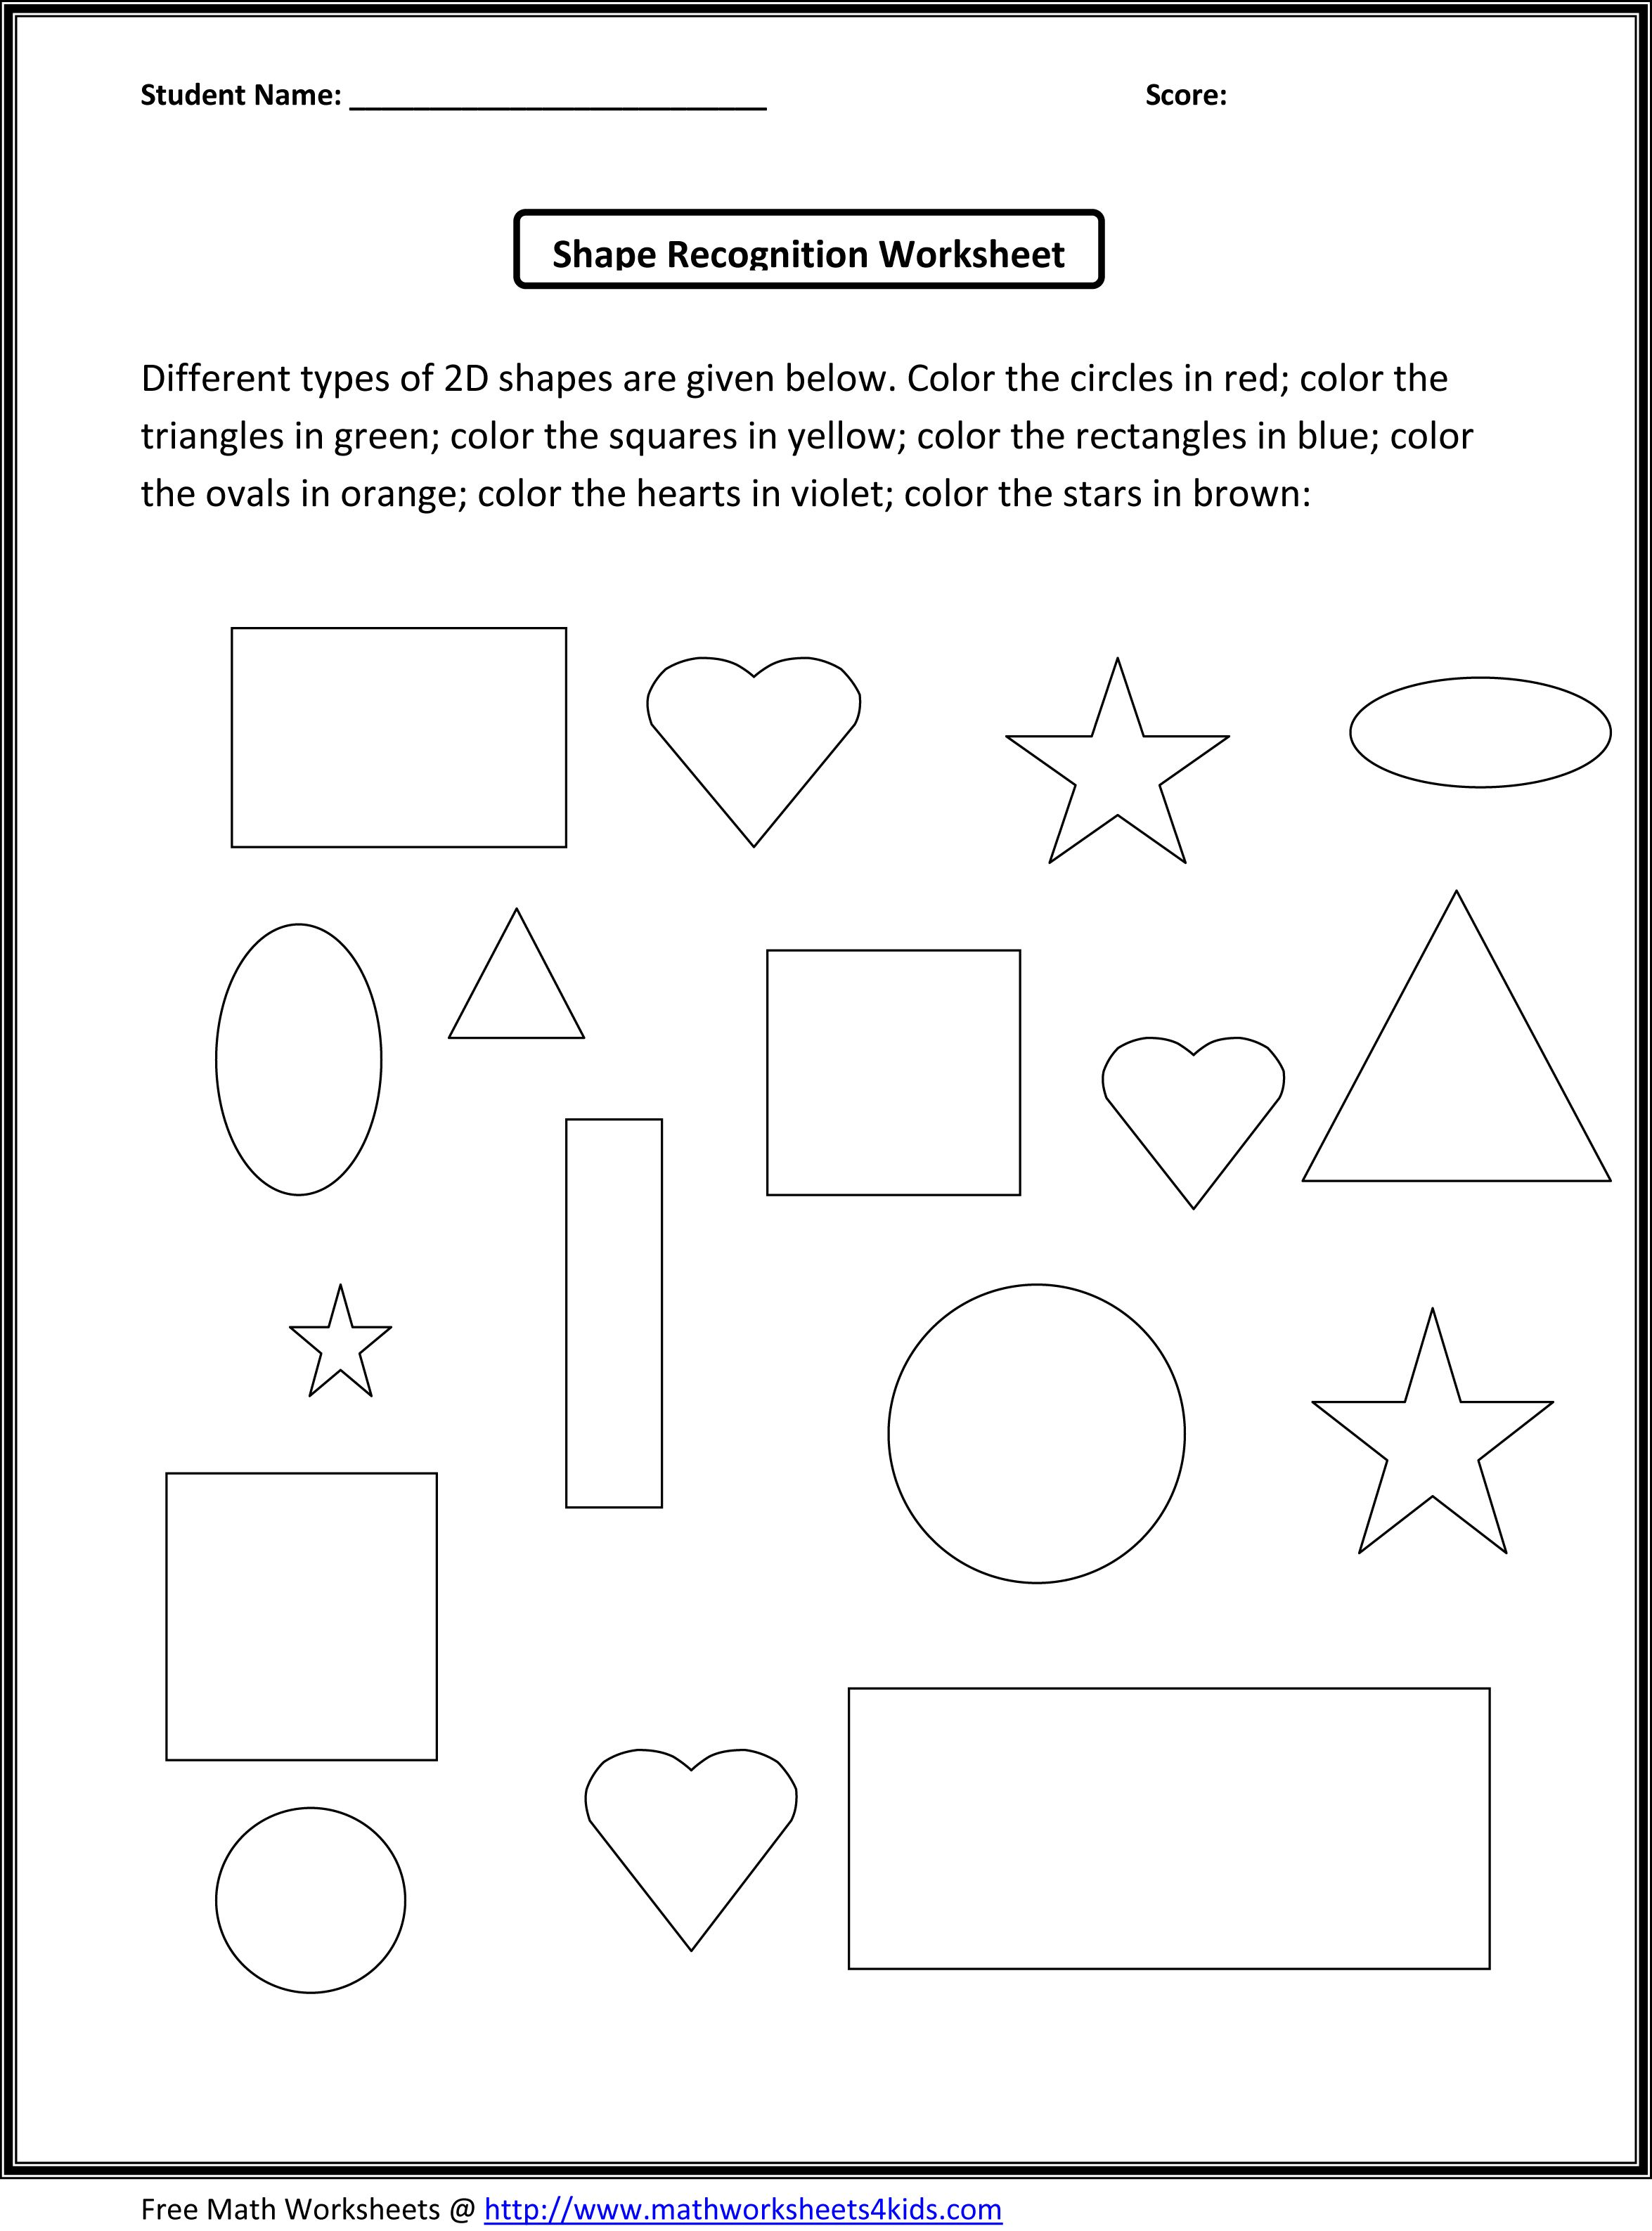 Worksheet Kindergarten Shapes shape worksheets for kindergarten ie worksheet shapes money and spanish on pinterest